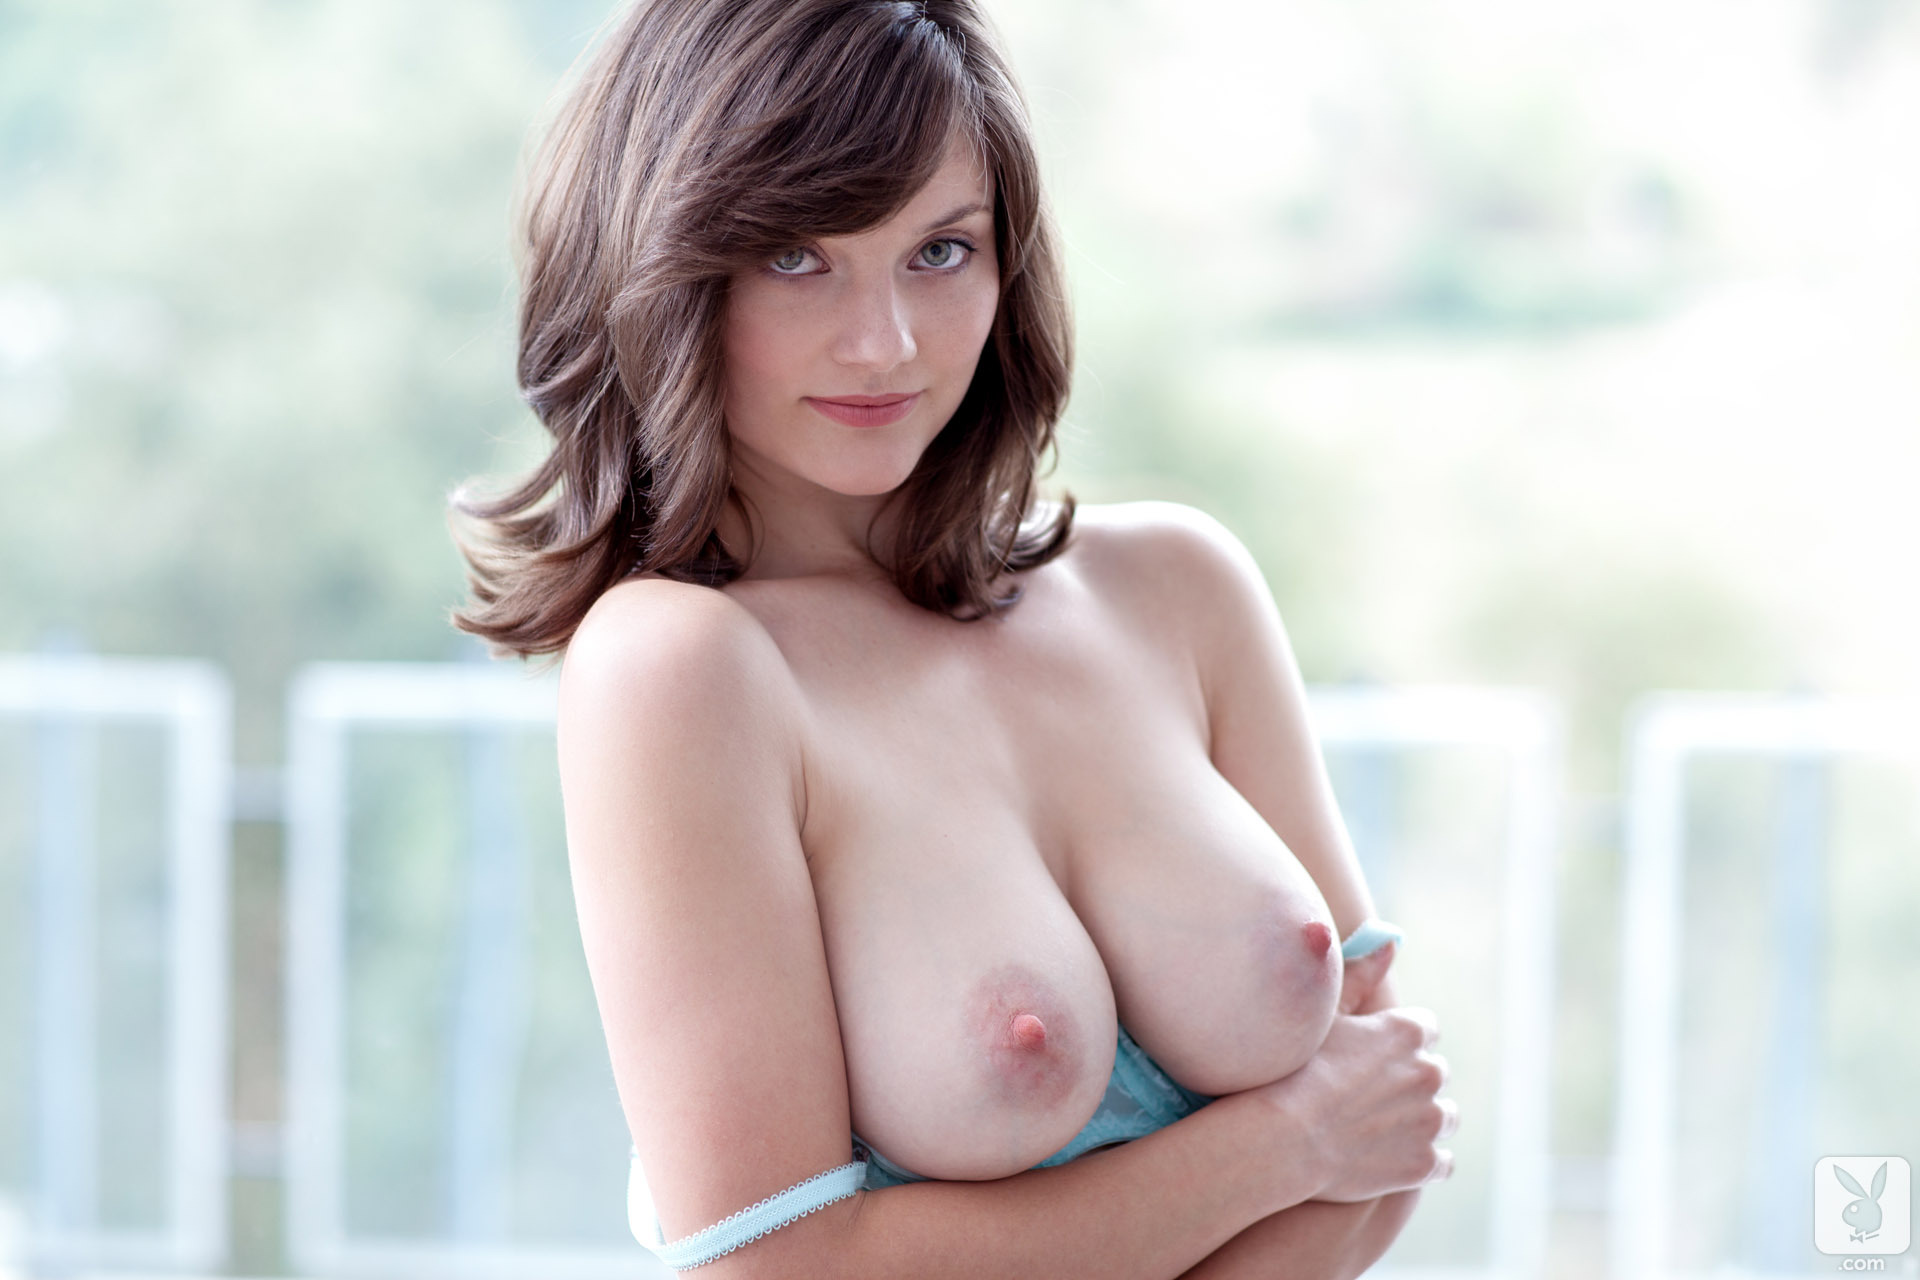 Most Incredible Nude Girls In The World Ever